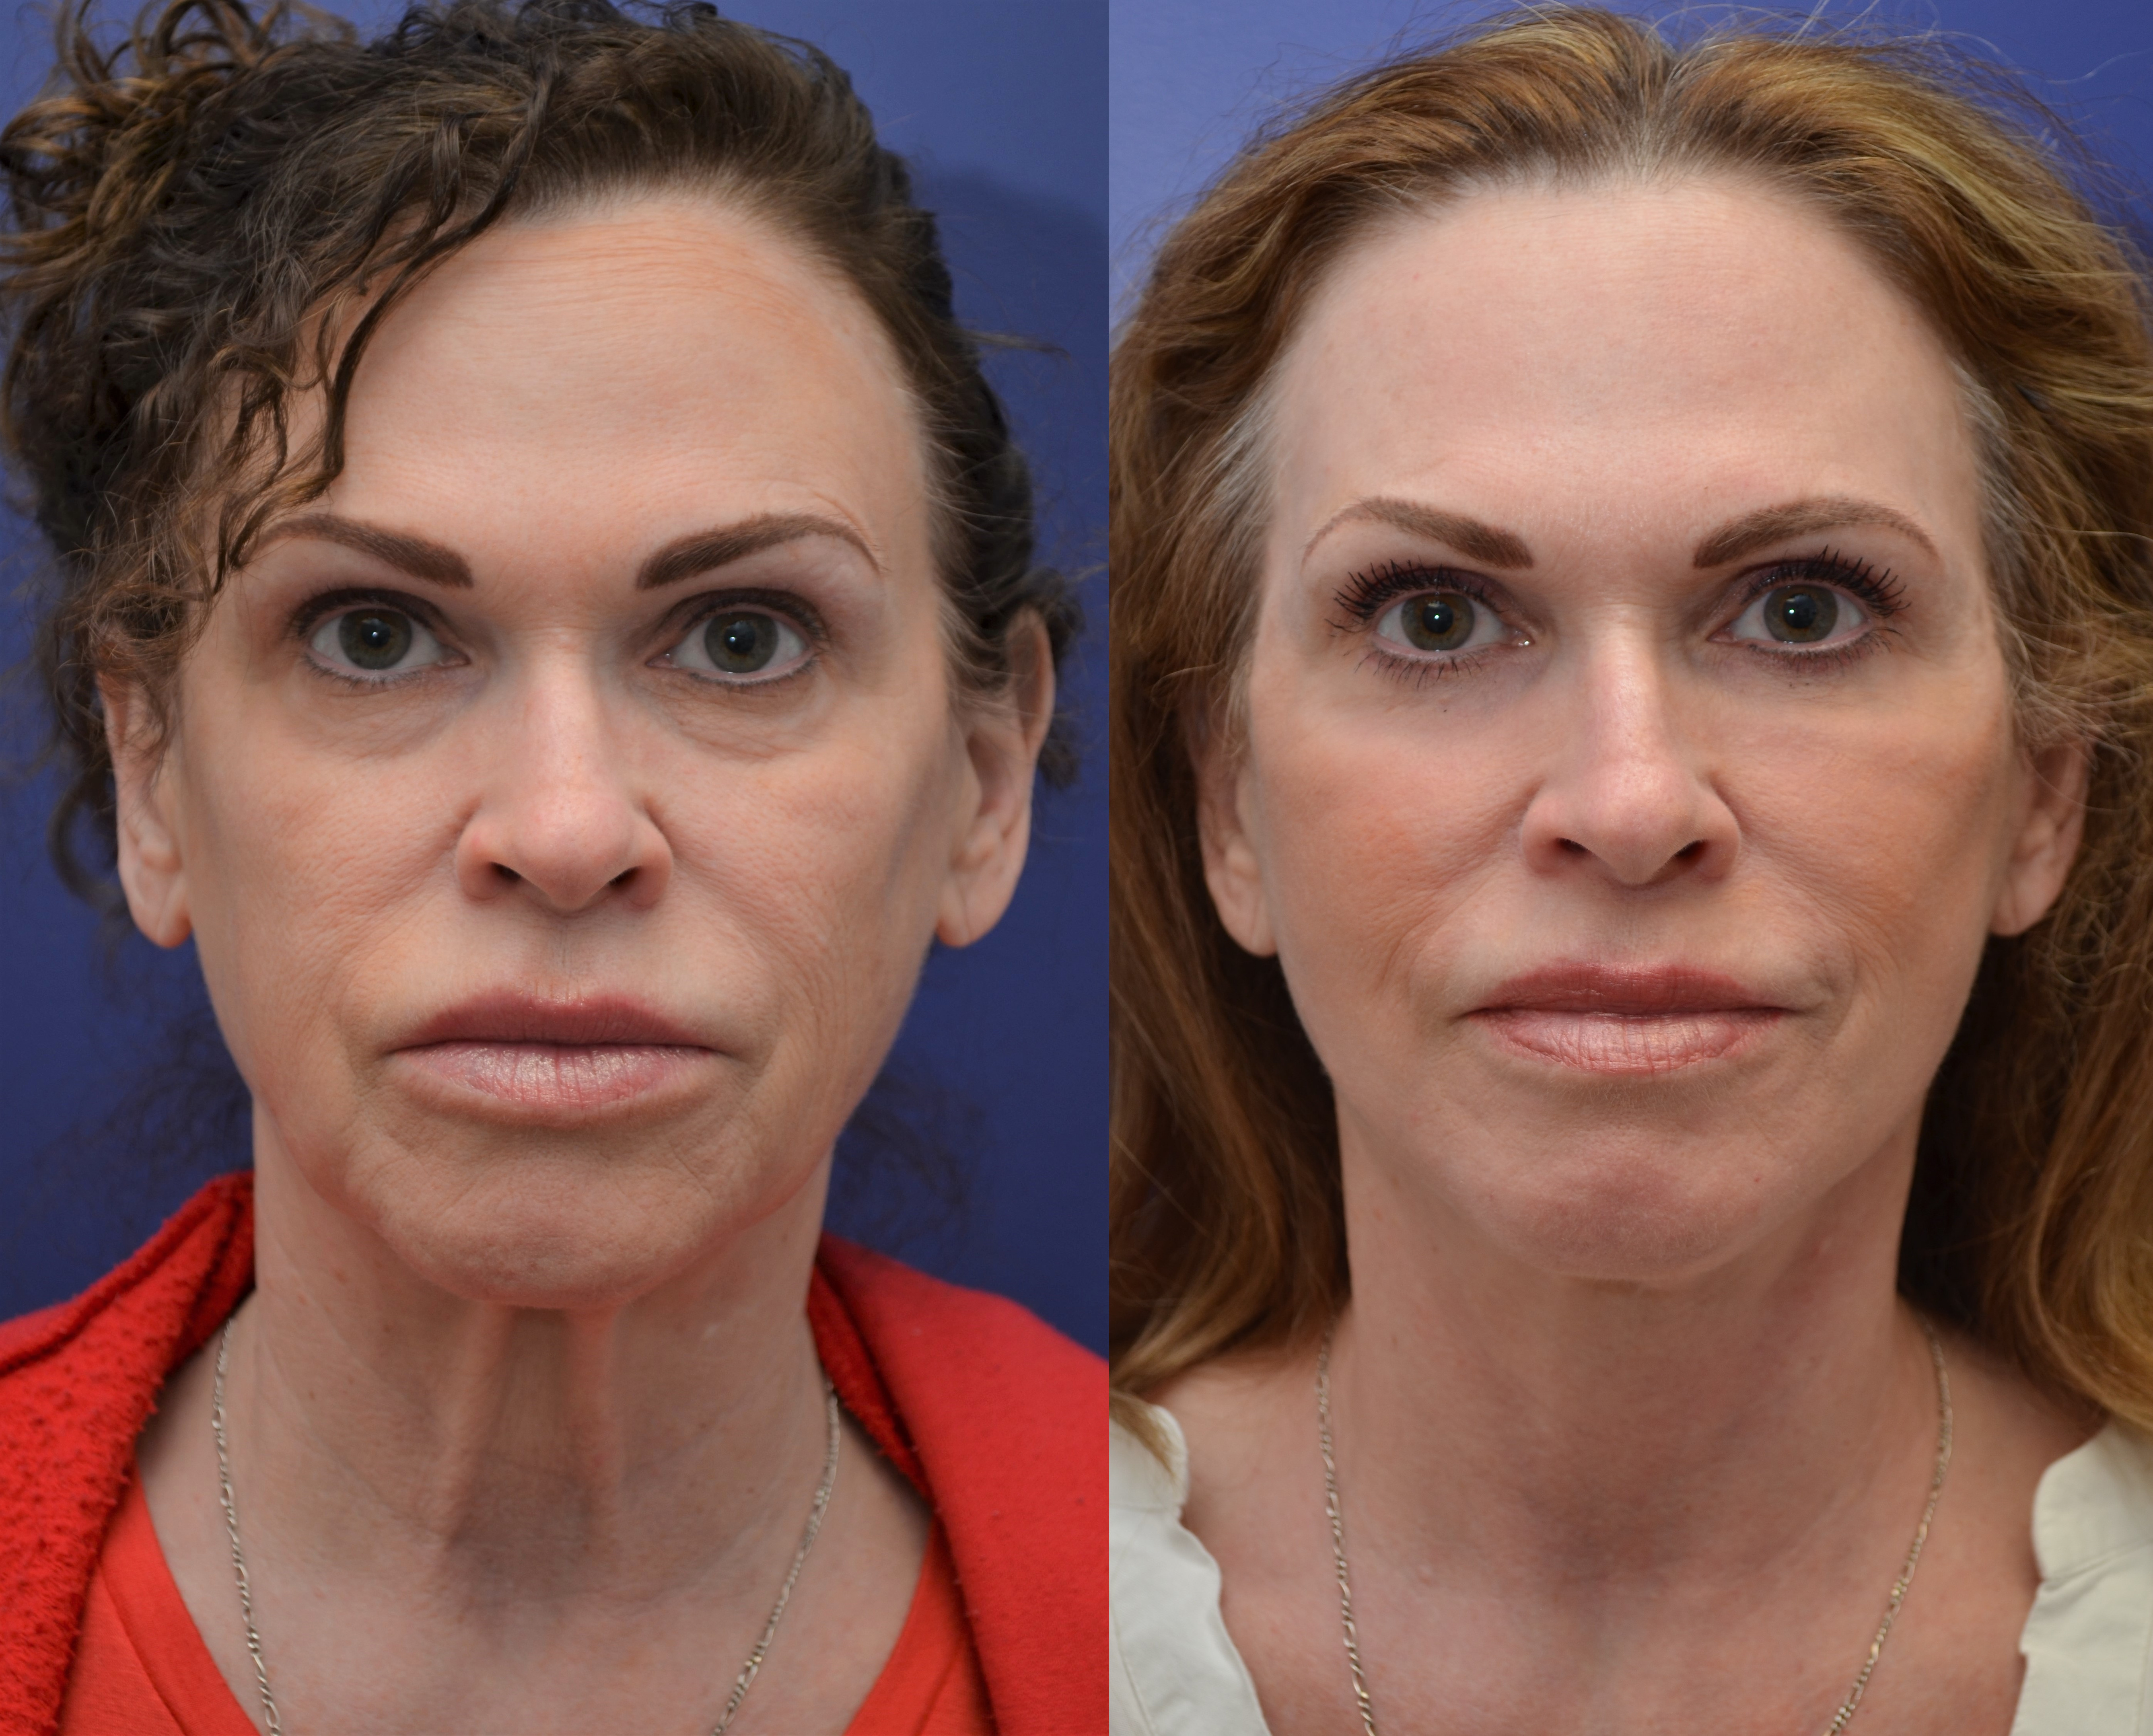 C02 Laser Resurfacing Westlake Village